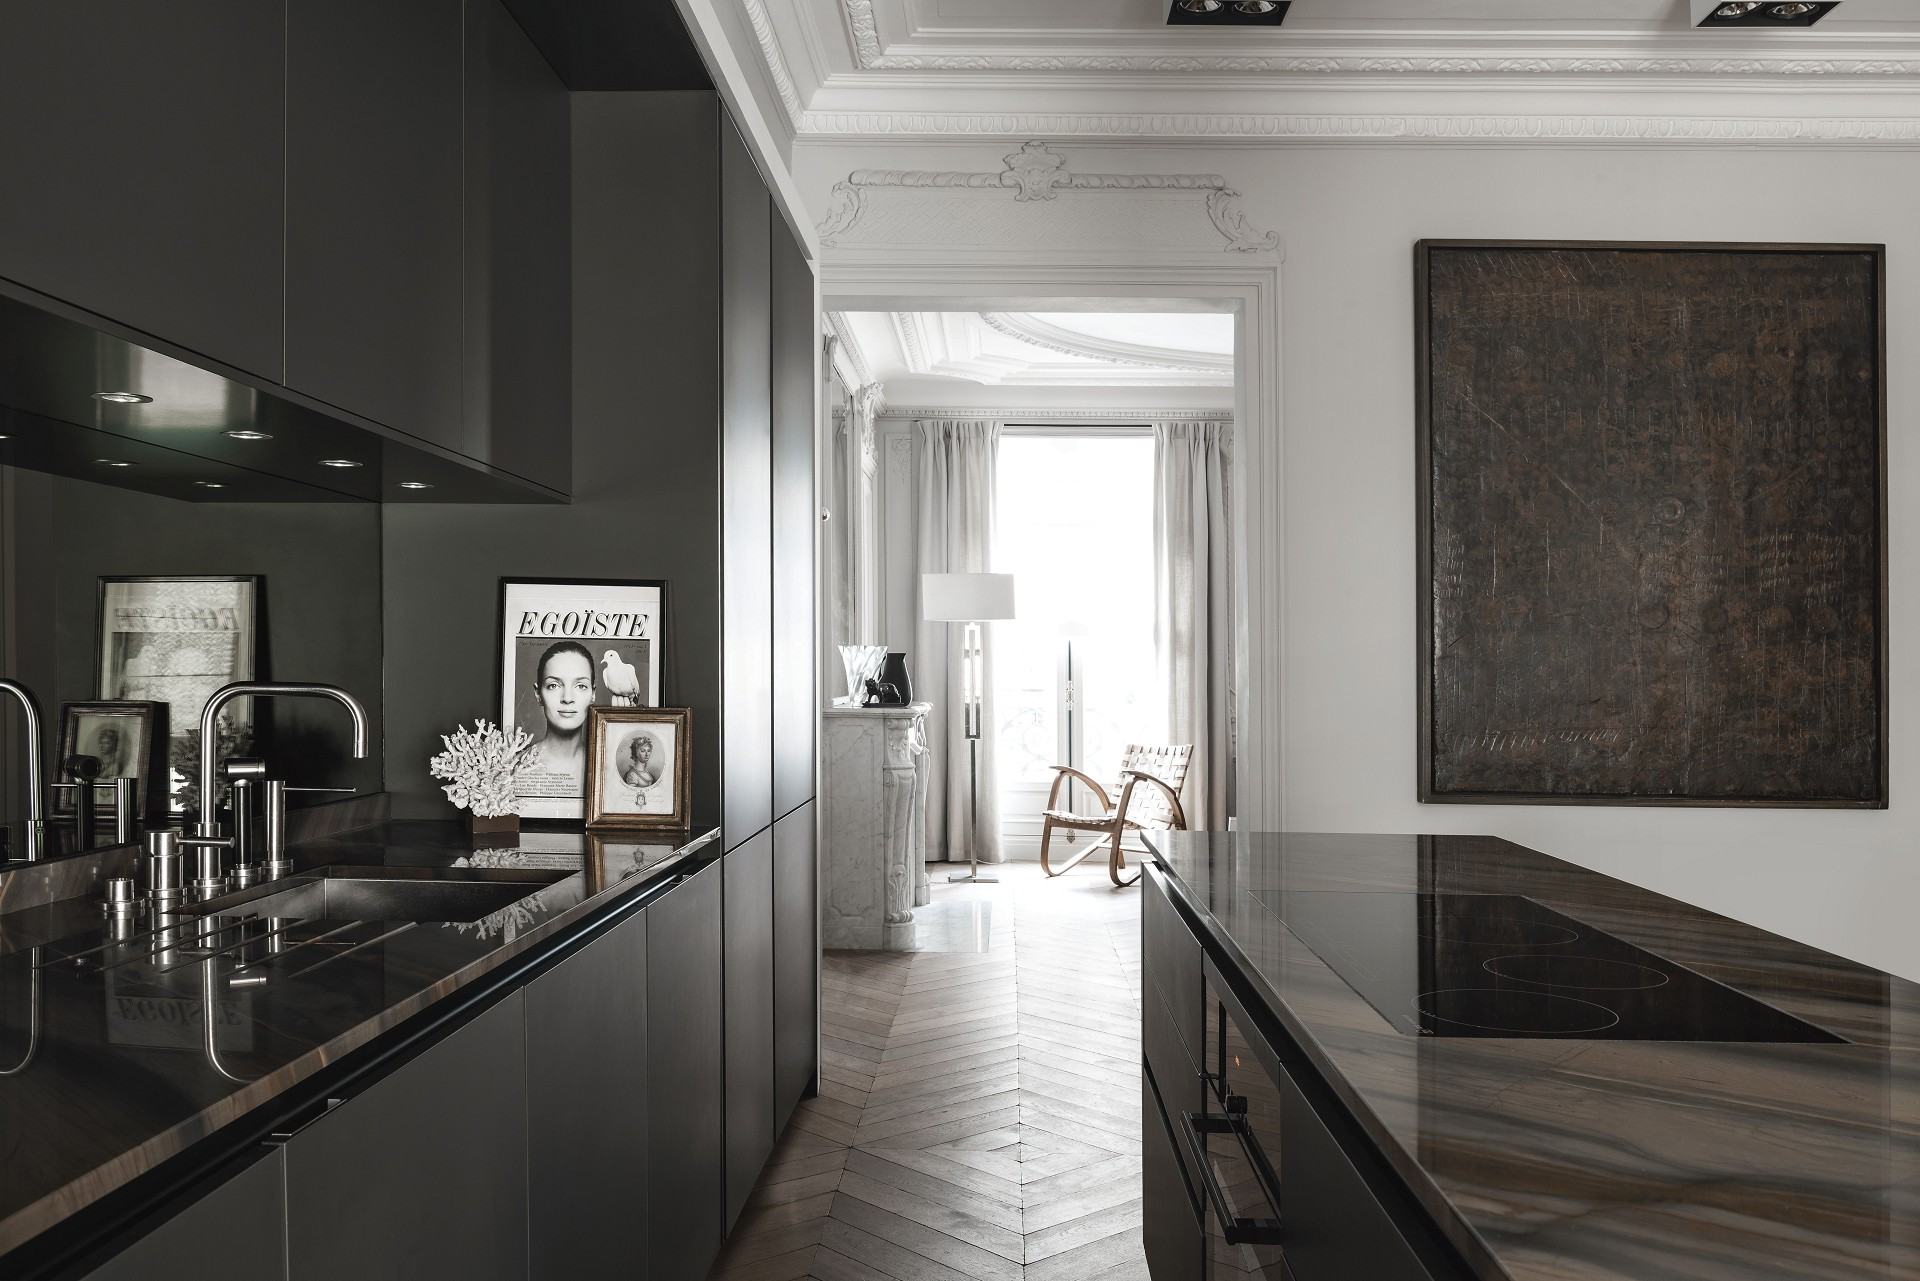 SieMatic kitchen design with SQ lacquer finishes in matte black and dark countertops